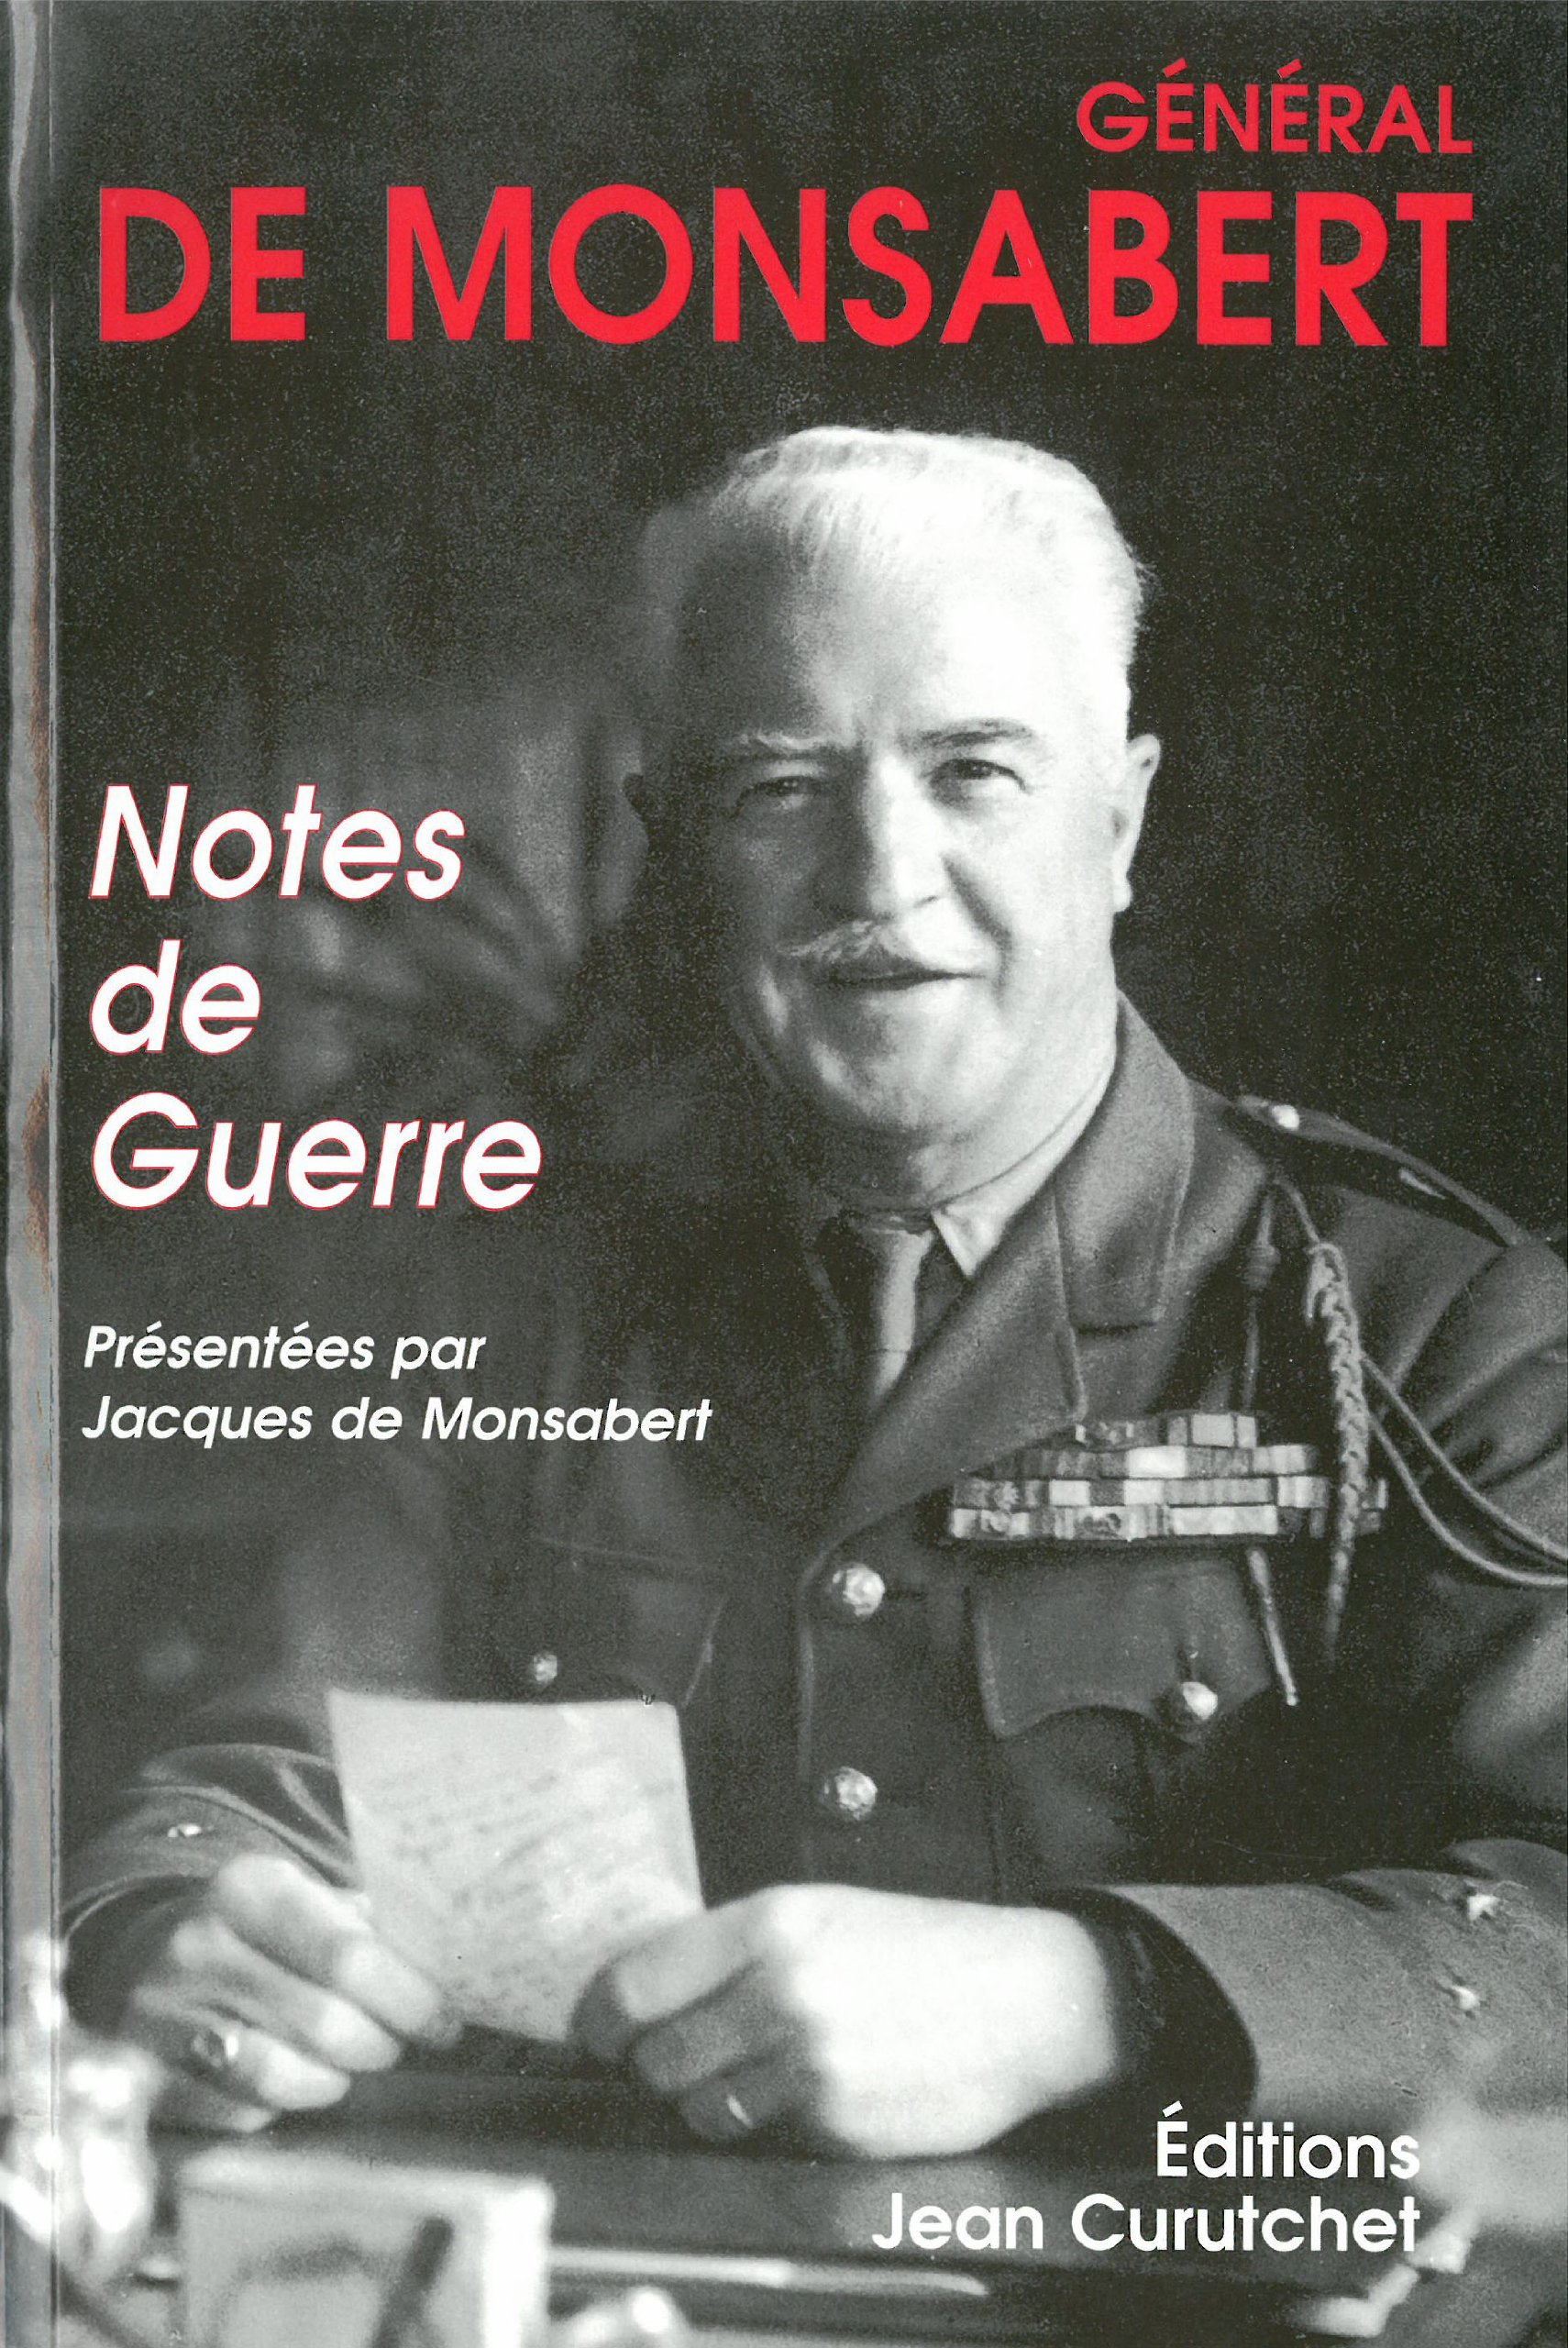 Notes de guerre. Monsabert